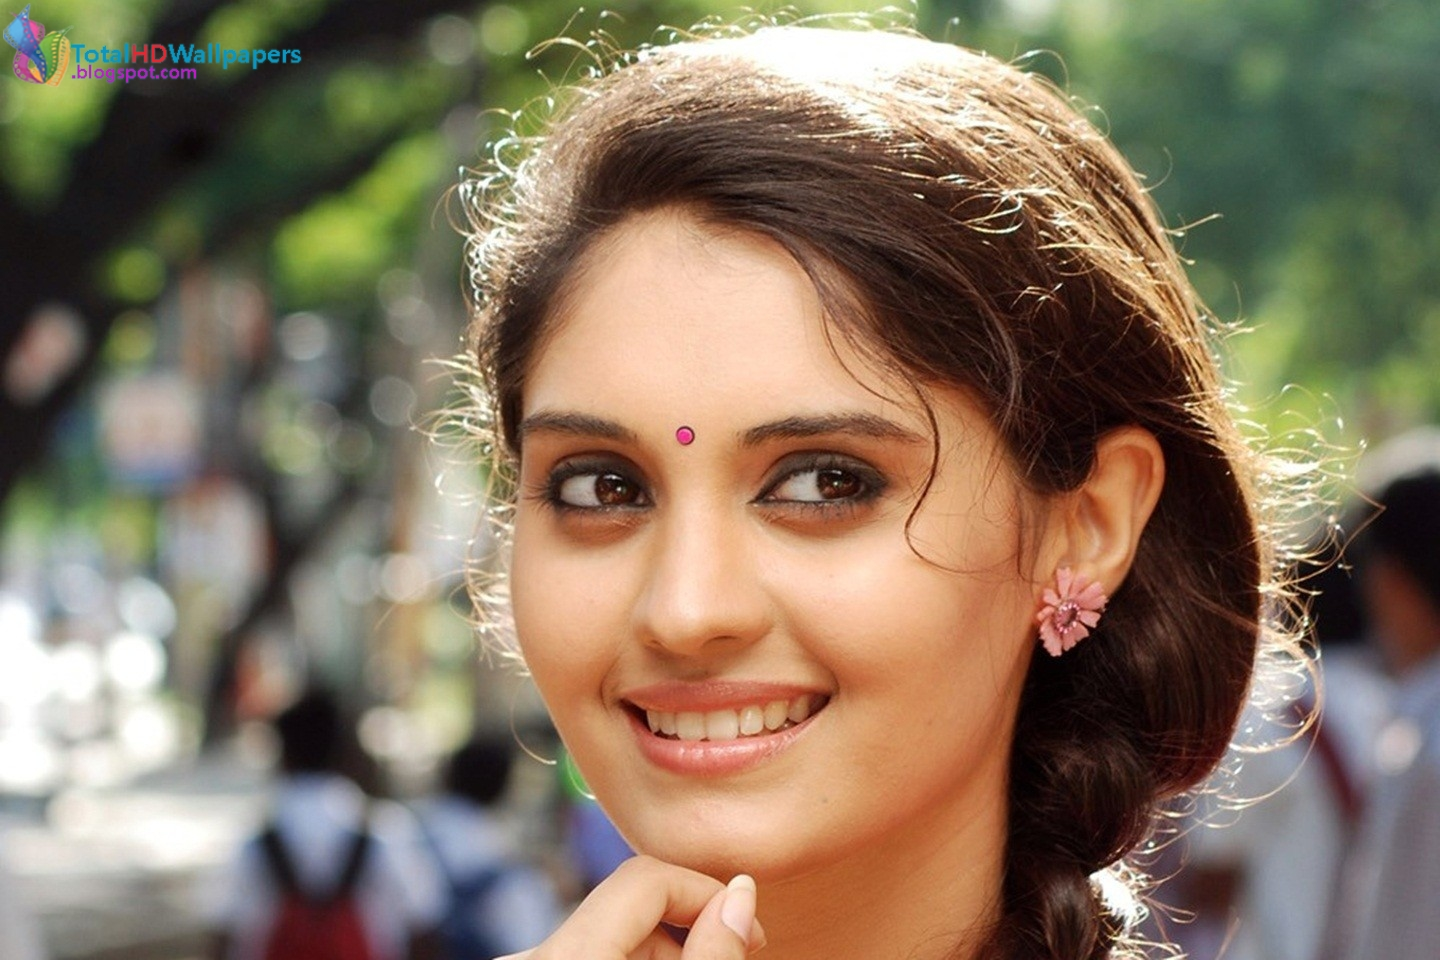 tamil actress hd wallpapers free downloads: surabhi hd wallpapers